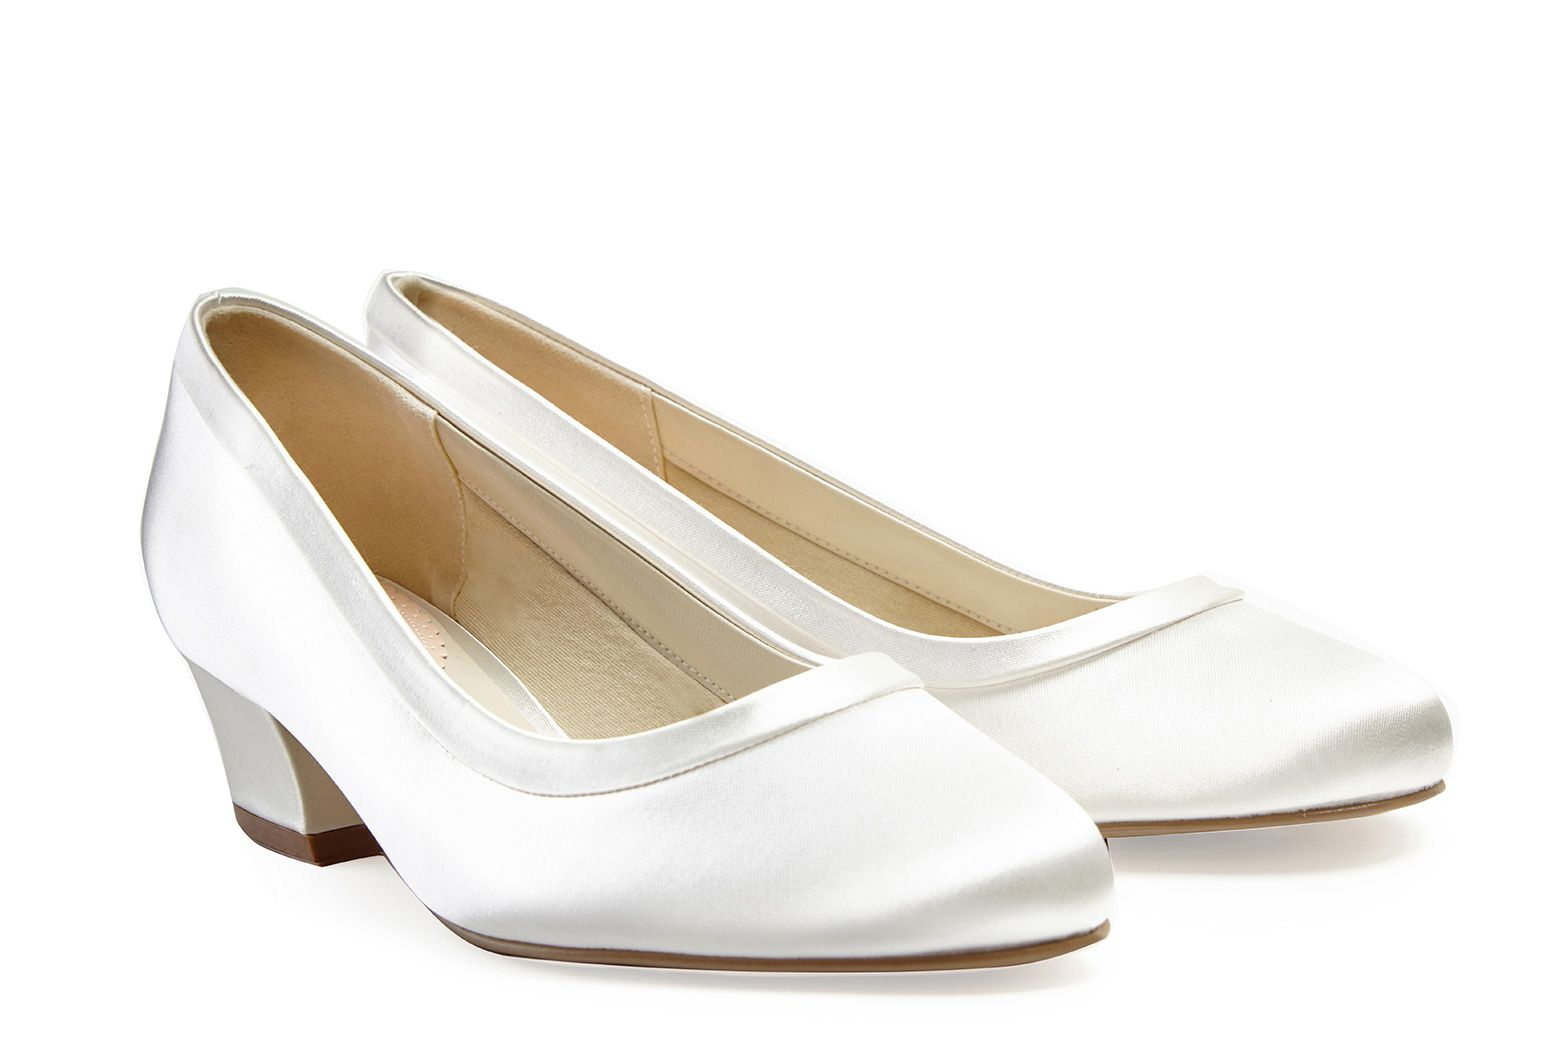 Vintage Wedding Shoes, Flats, Boots, Heels Favour Dyeable Satin £69.00 AT vintagedancer.com